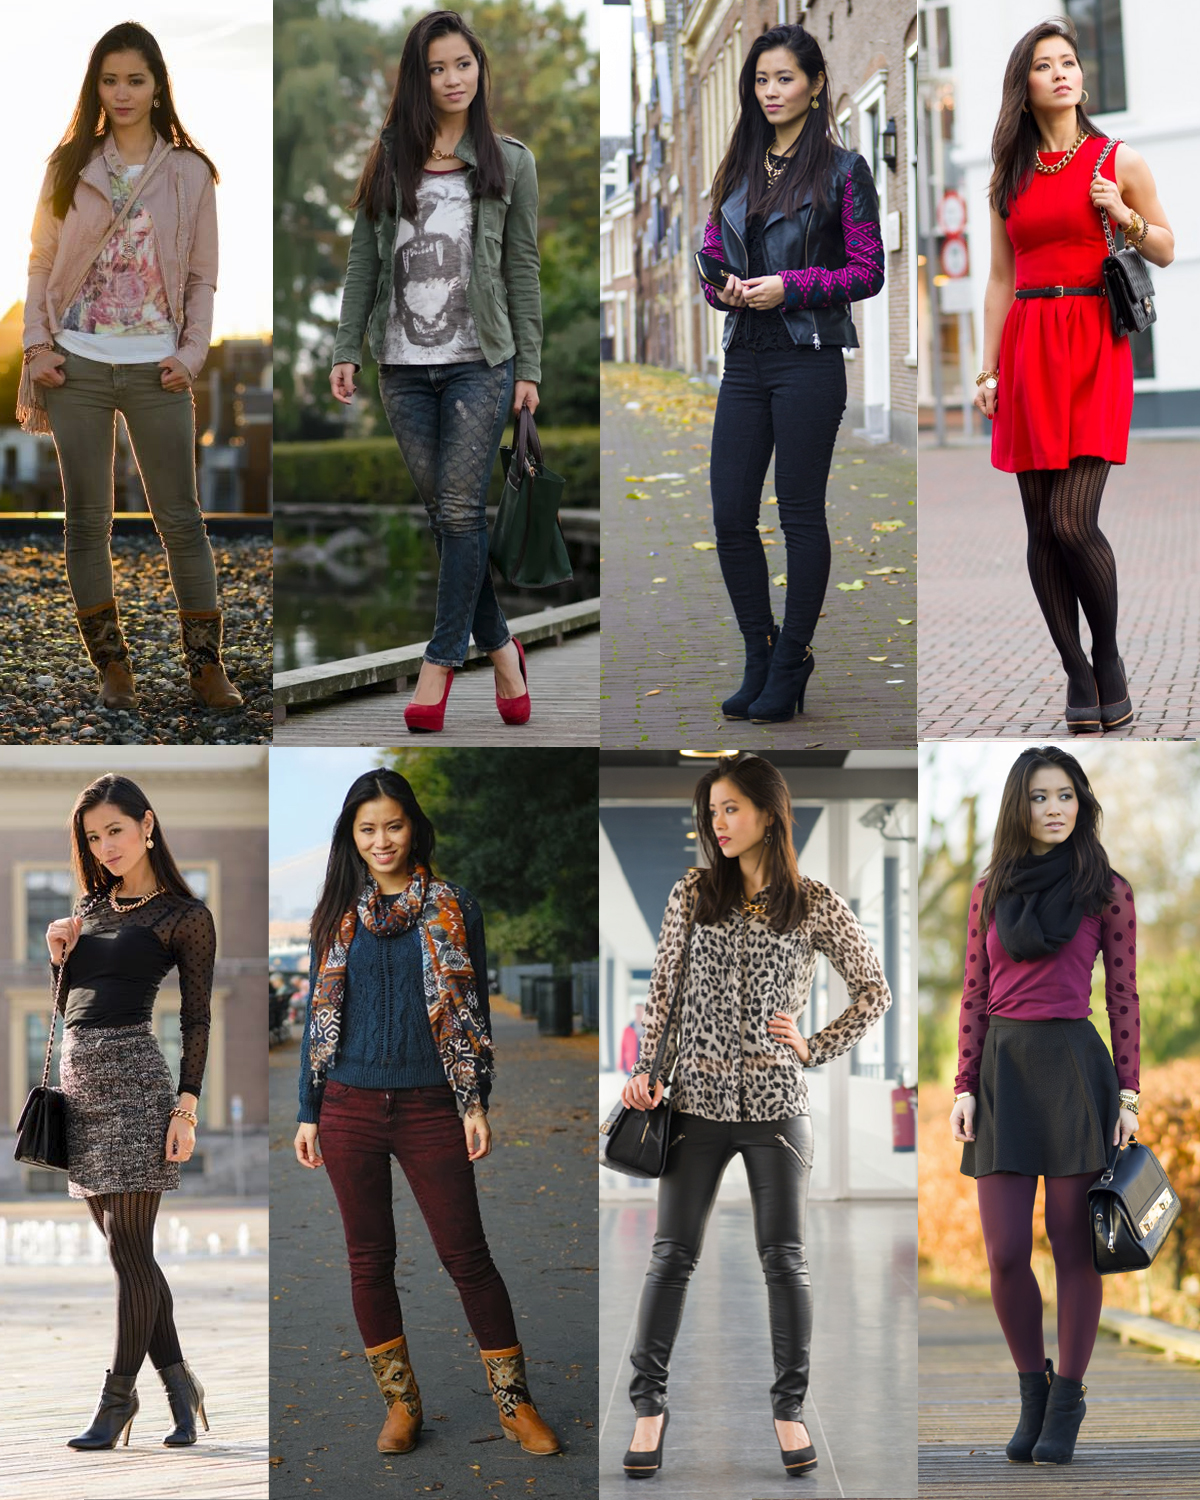 Outfits-fotos-blazers-autumn-winter-dress-2013-My-Huong Outfits van 2013